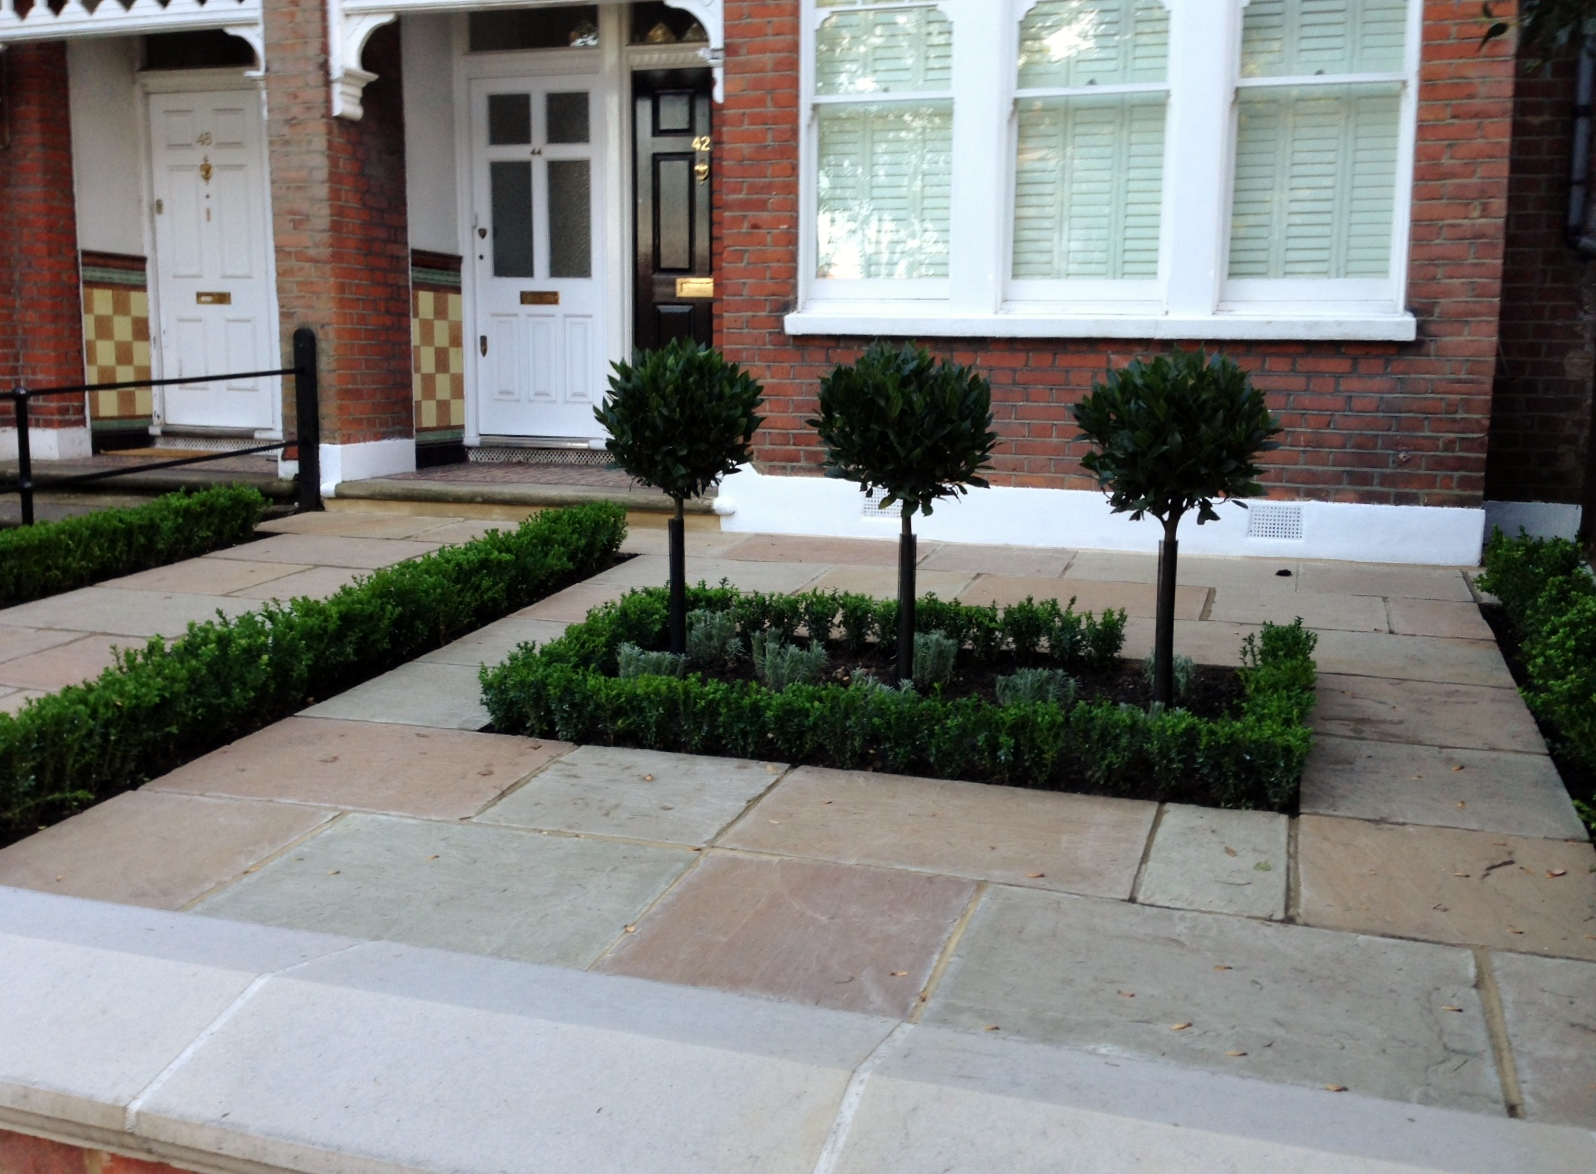 Imperial red brick London wall stone  pier caps sandstone paving and formal topiary classic front garden Balham (12)